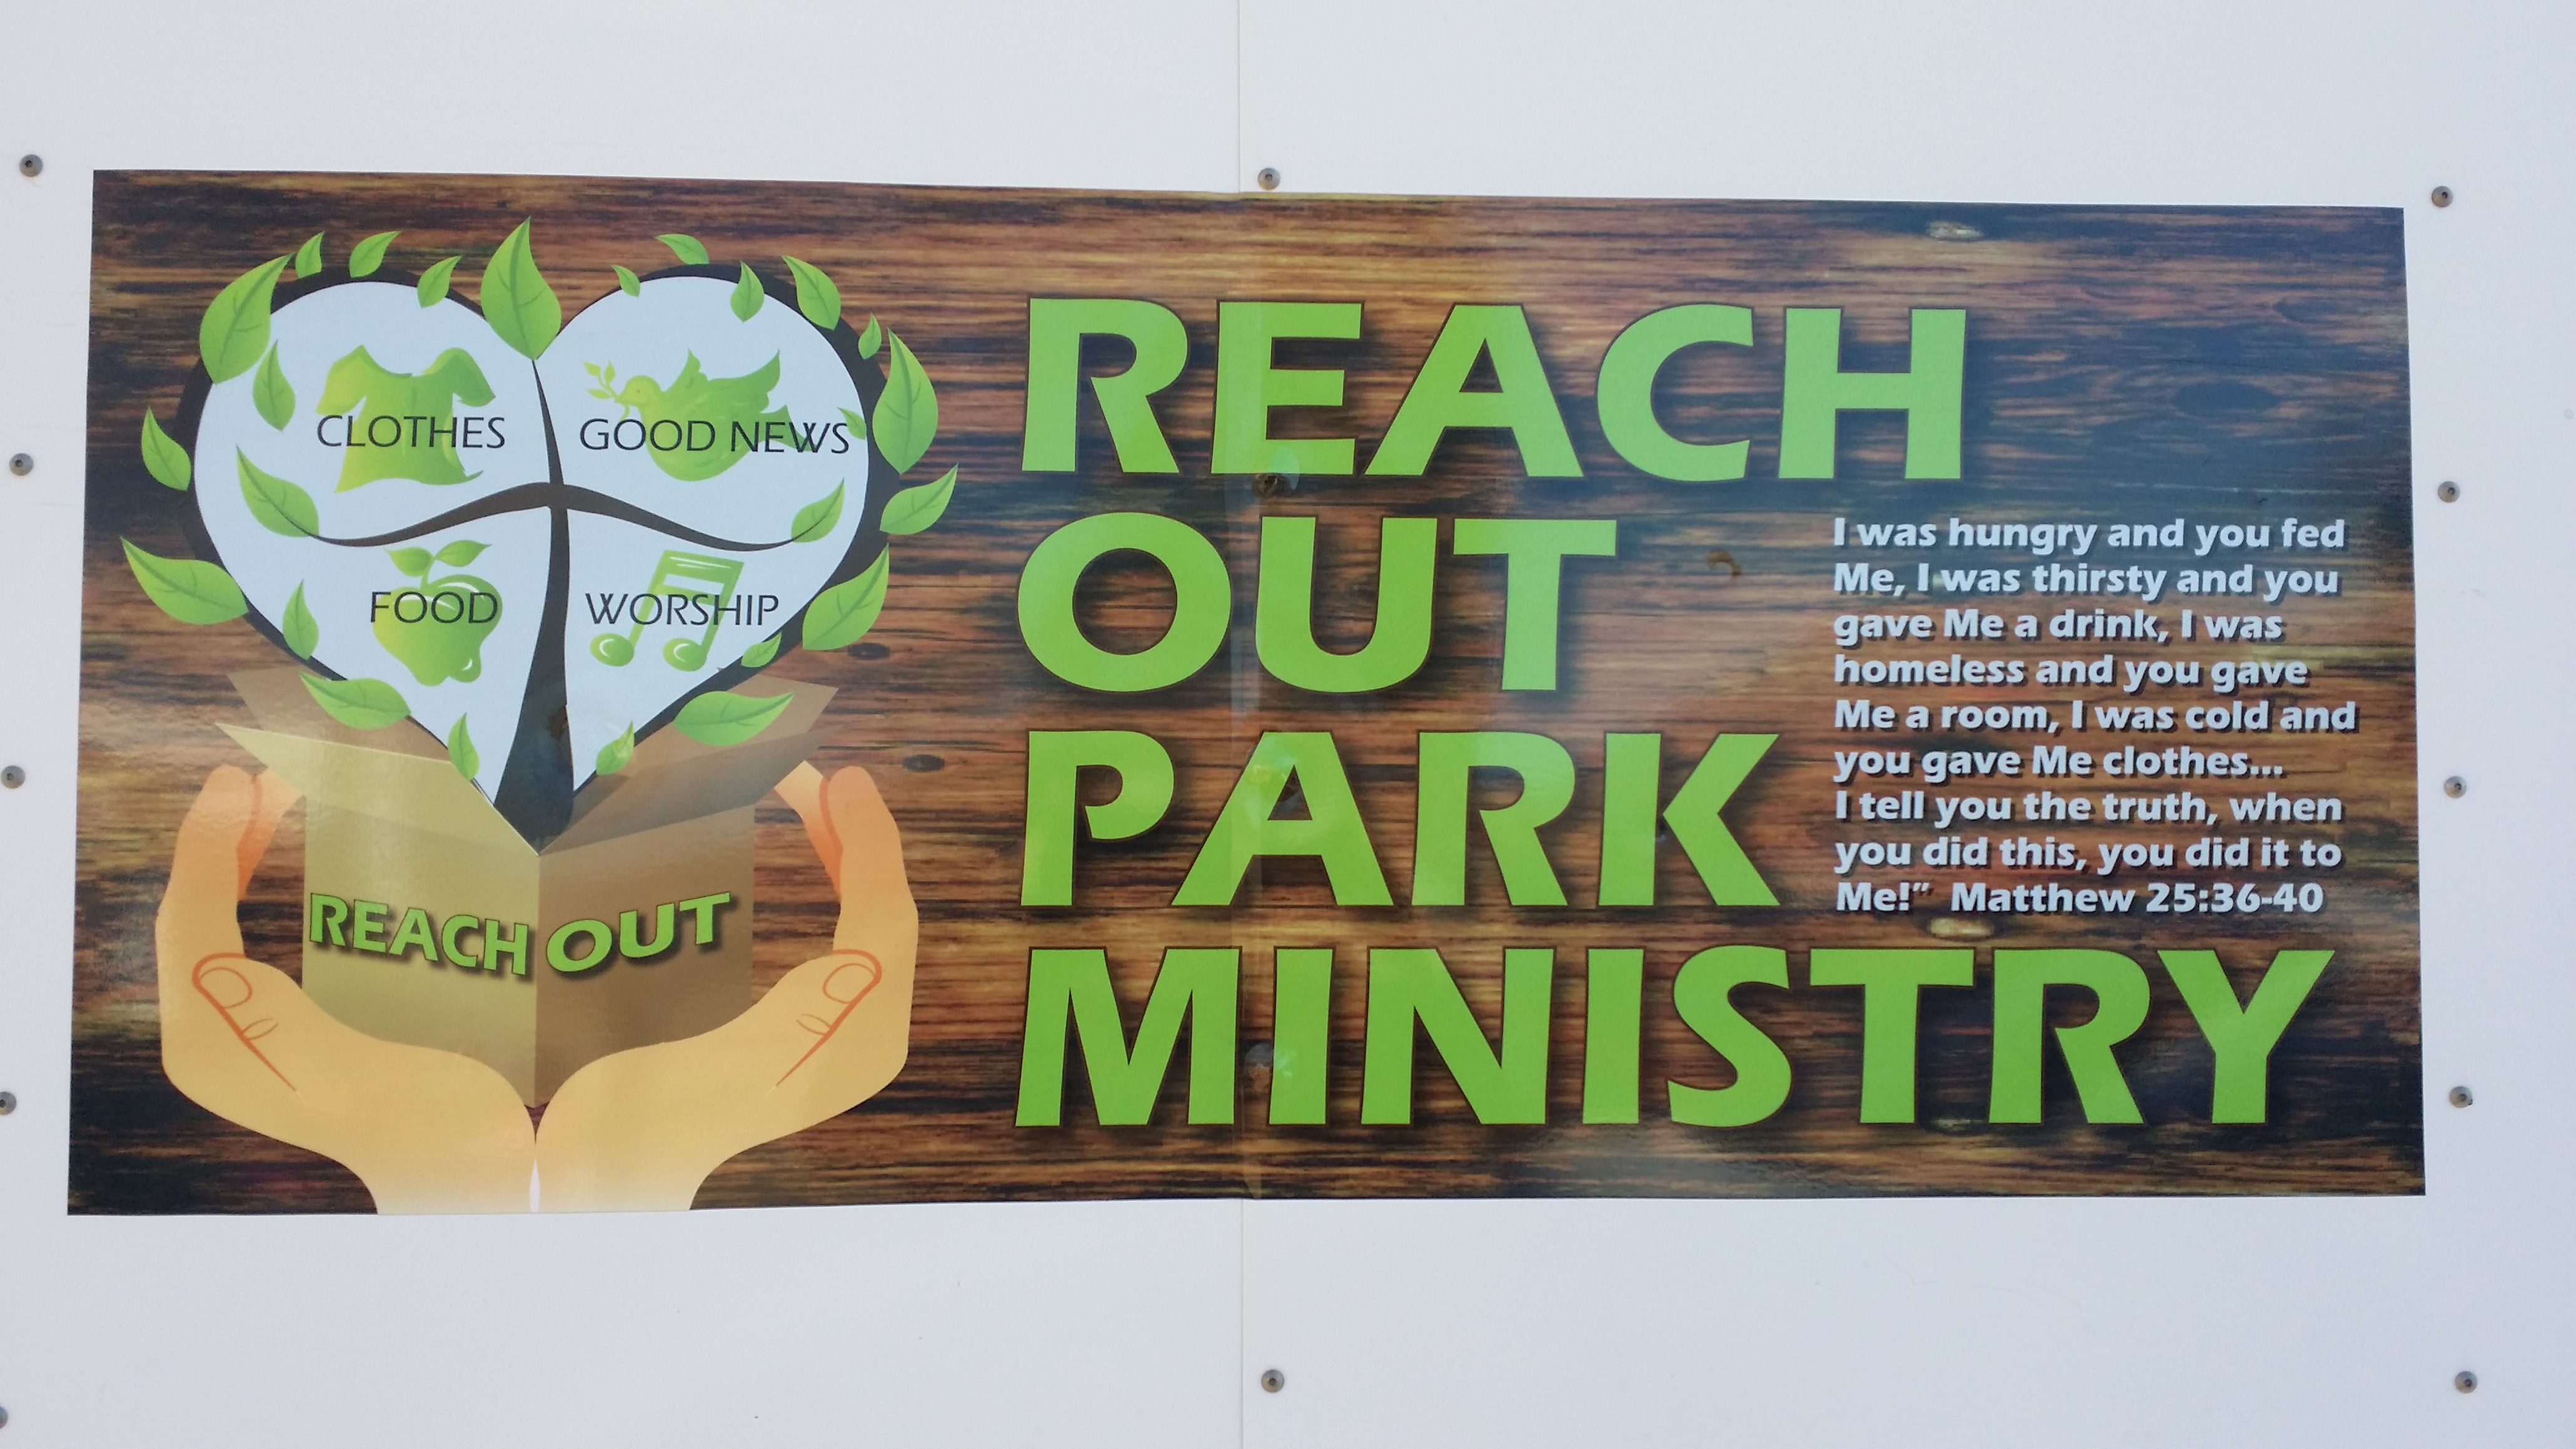 Reach Out Park Ministry